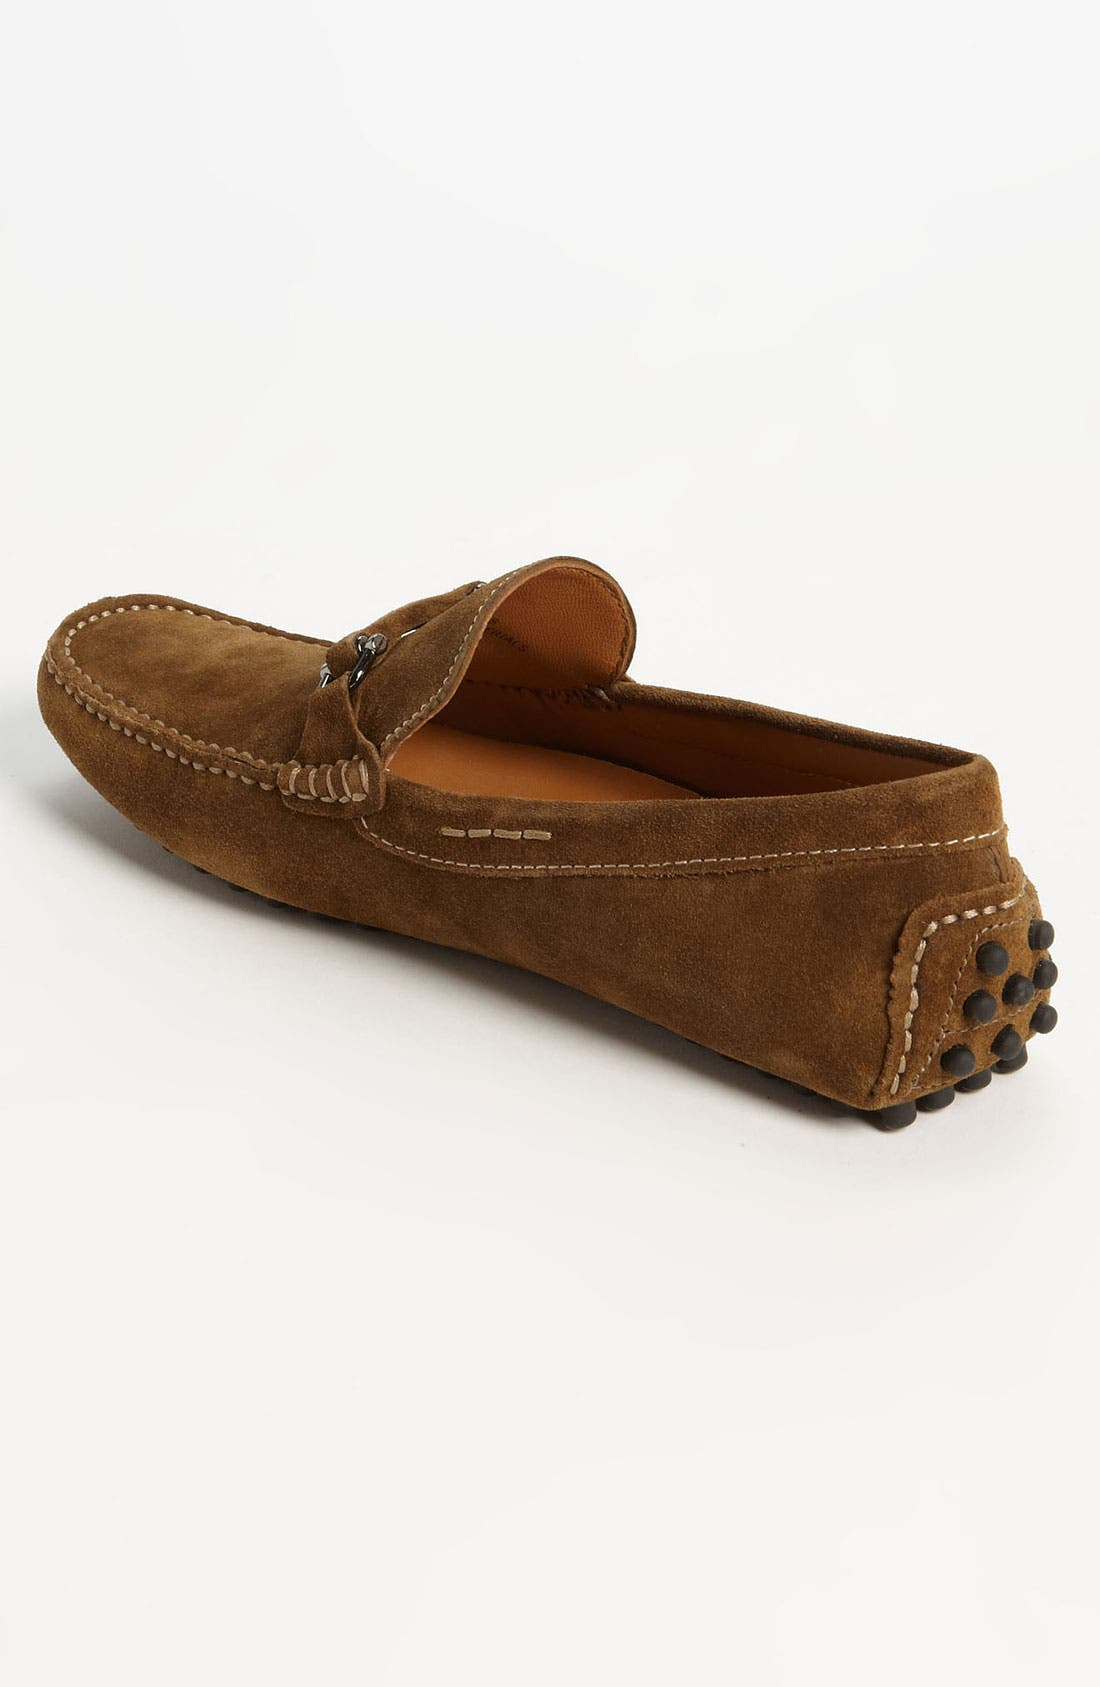 'Antigua' Driving Shoe,                             Alternate thumbnail 2, color,                             Tobacco Suede